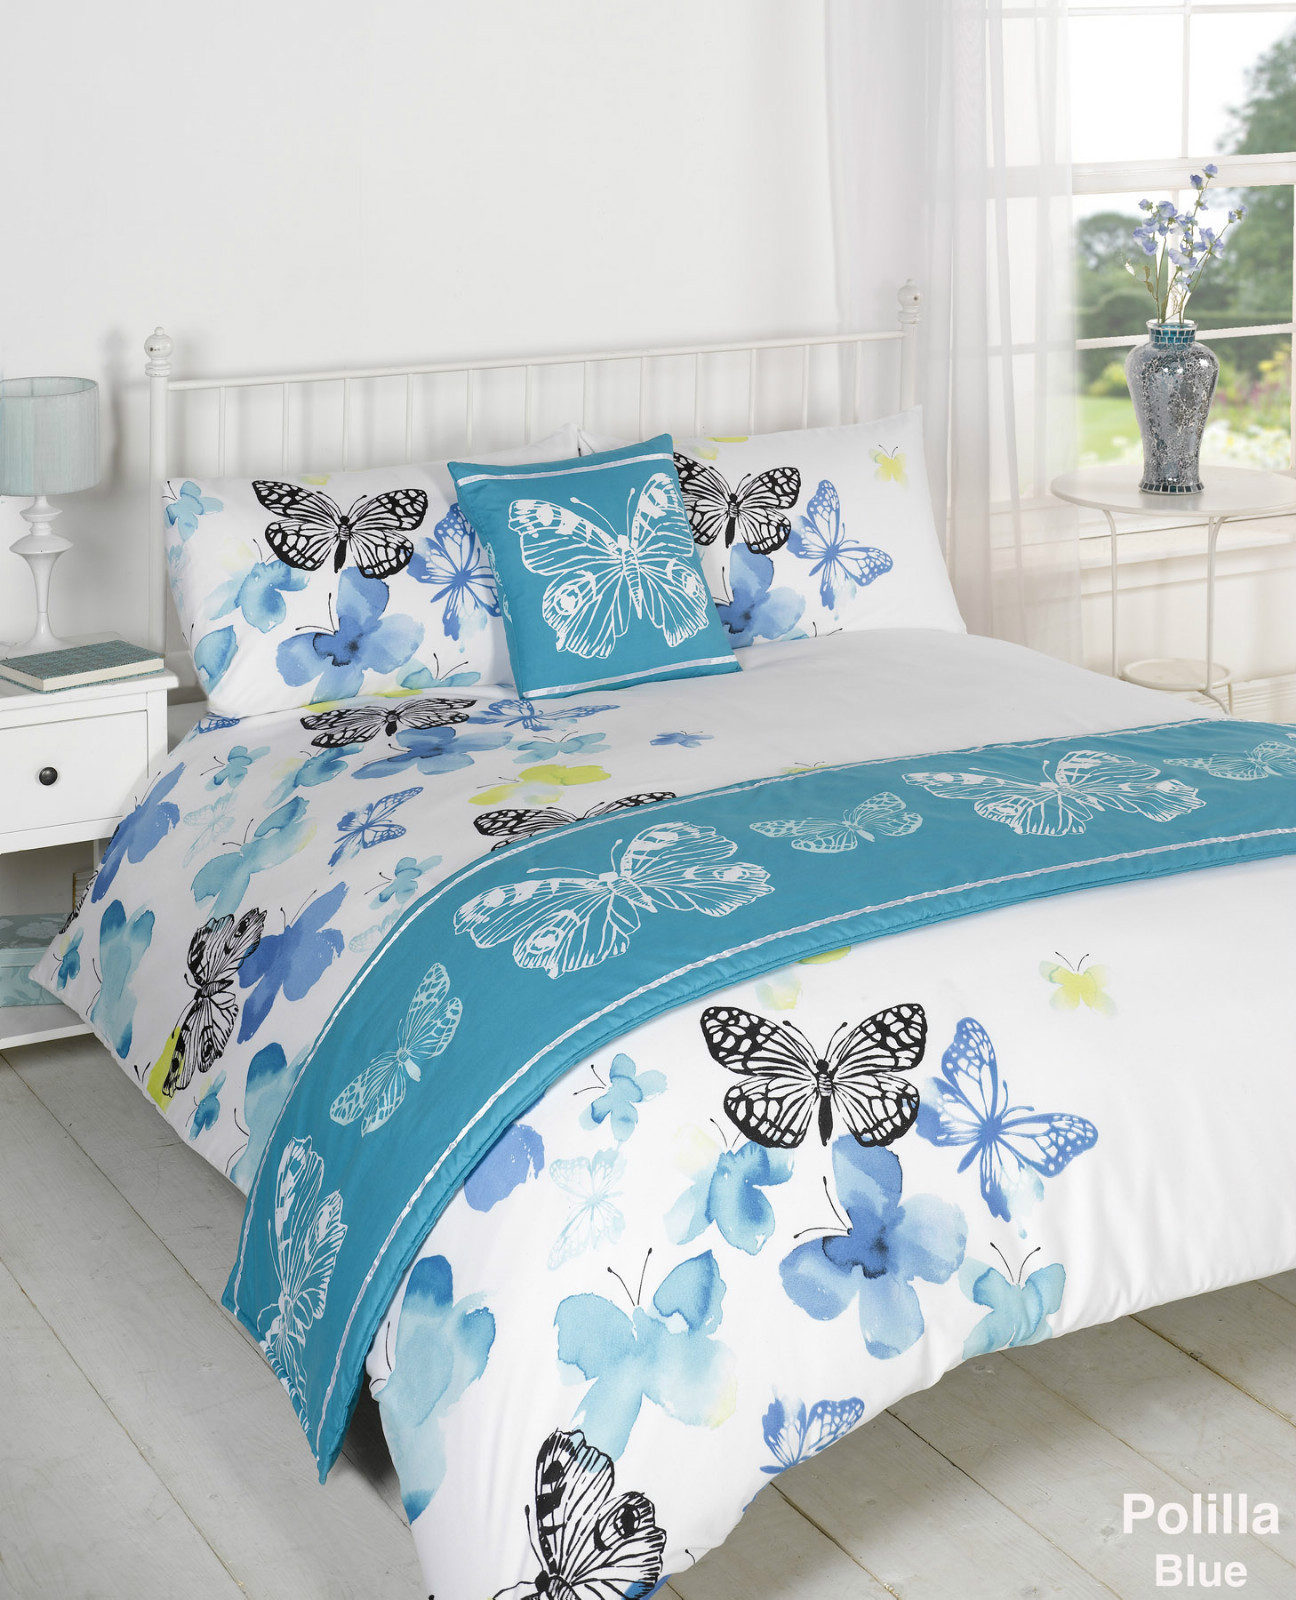 King Size Bed Duvet Covers | King Size Duvet Covers | Paisley Duvet Cover